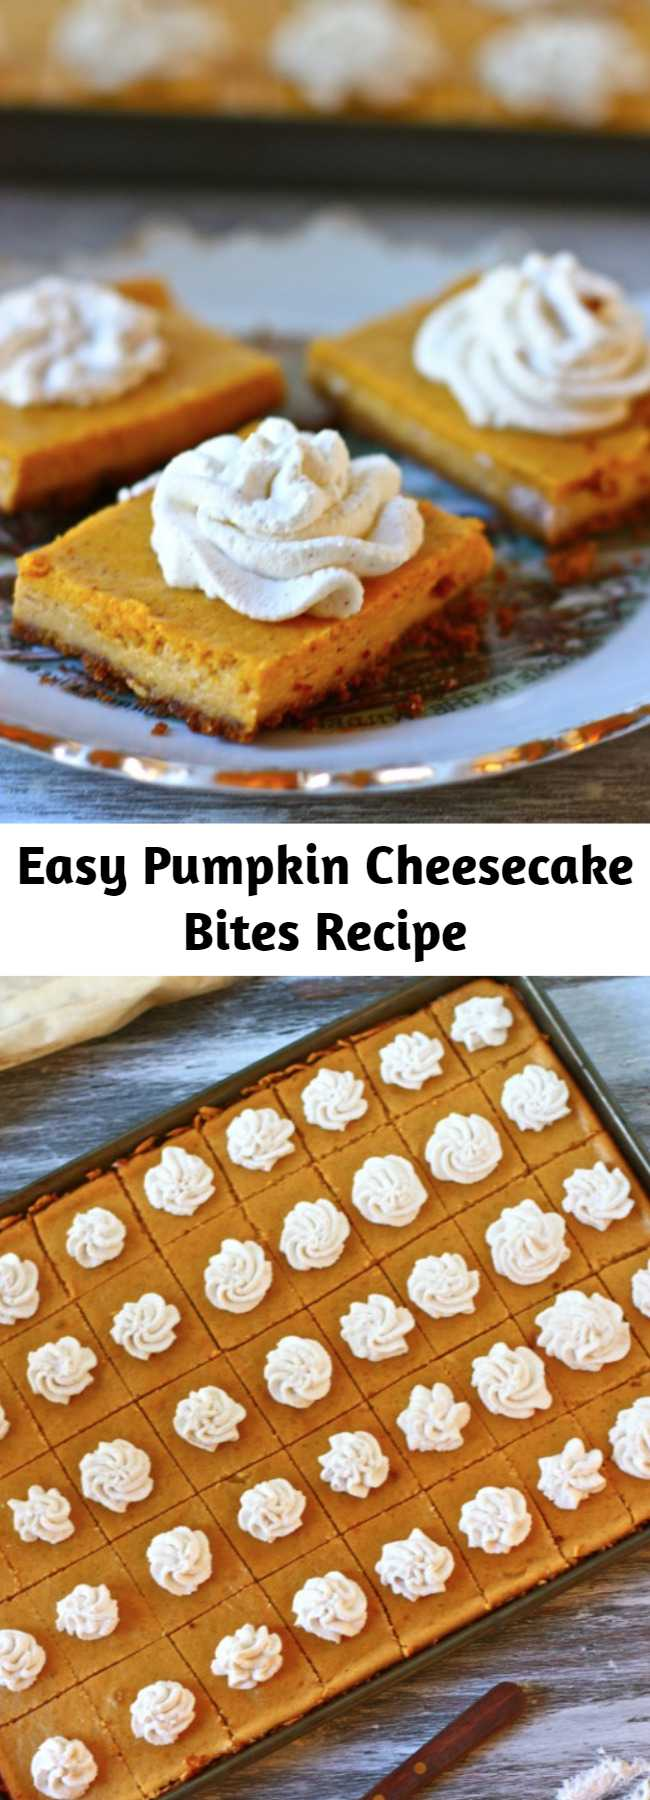 Easy Pumpkin Cheesecake Bites Recipe - These pumpkin cheesecake bites are for all the non-pumpkin pie lovers in the world…along with everyone else. They're great to make to feed a crowd, but also great as something small and sweet after any ol' dinner. Just a warning: they are highly addictive.